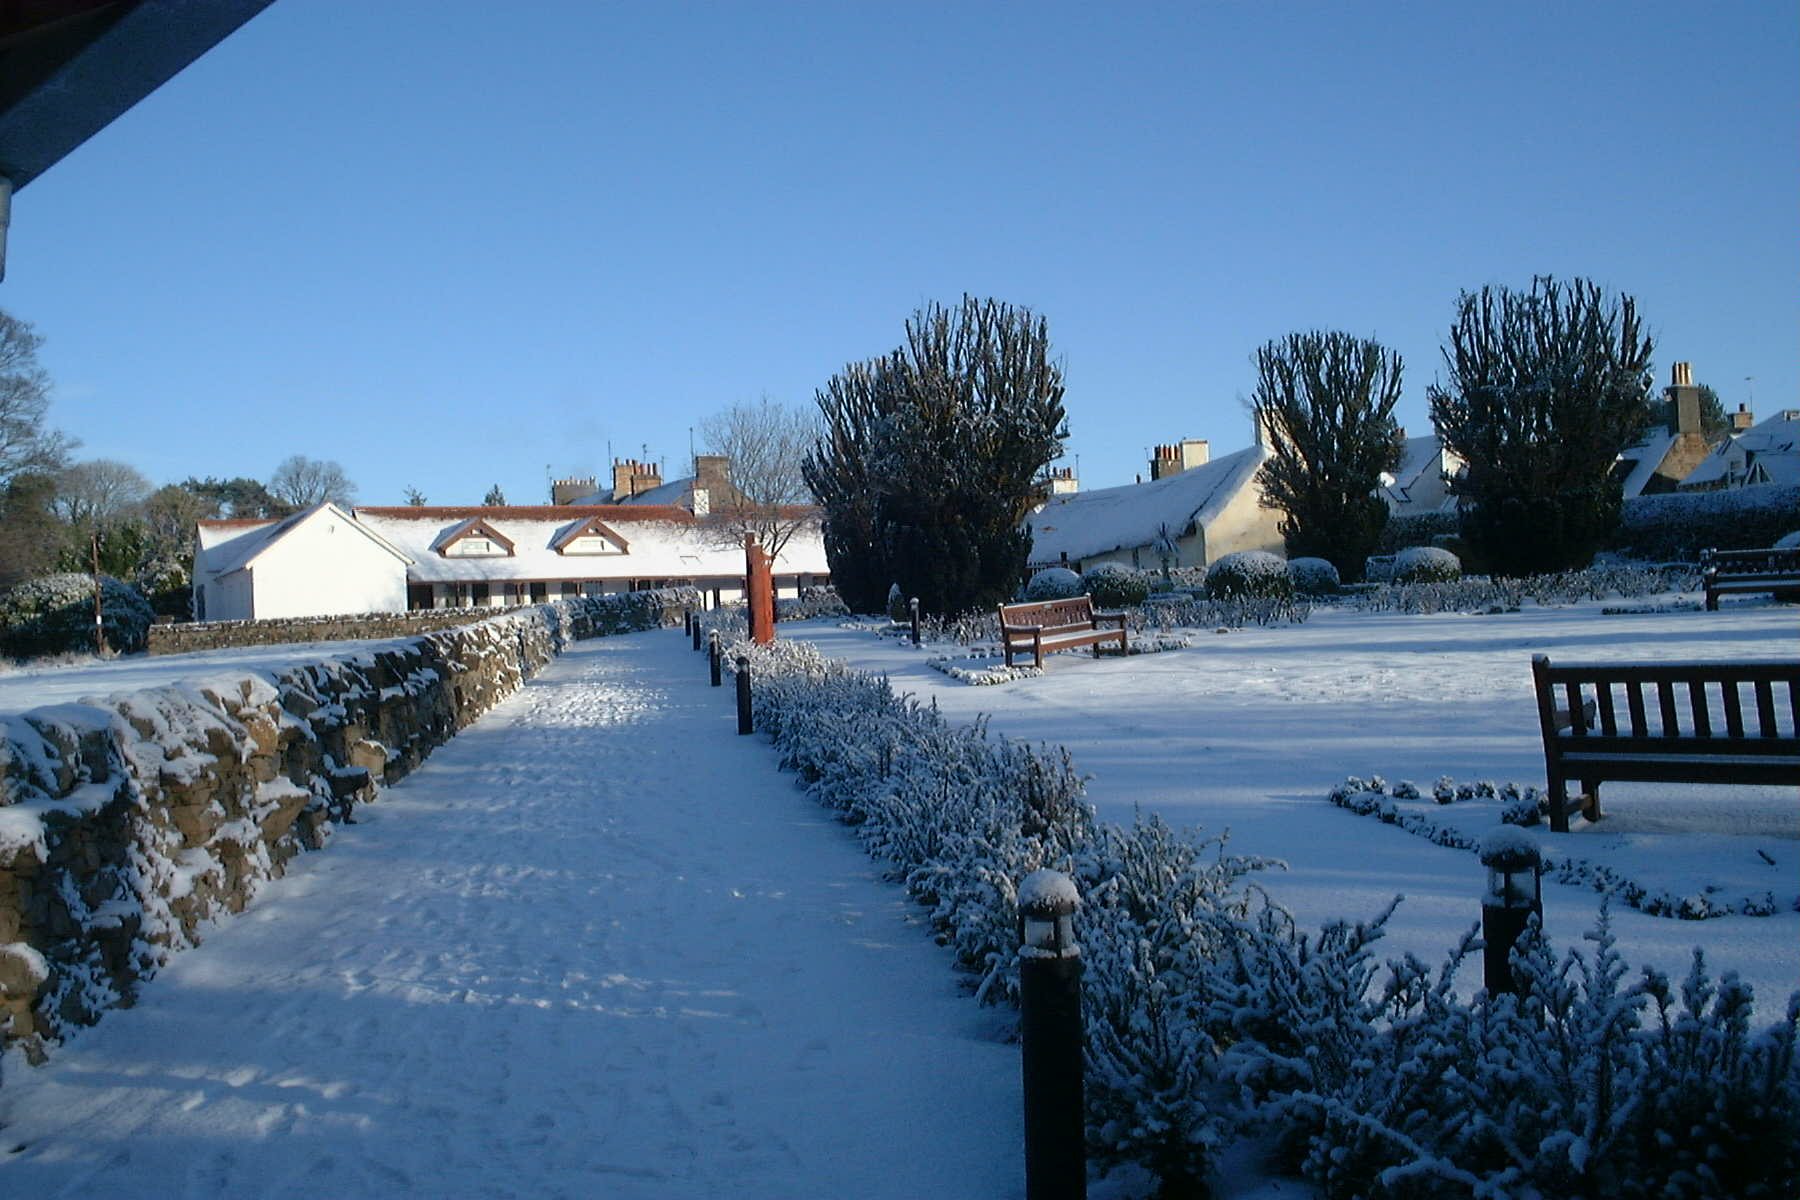 Burns Cottage & Chilldren's Activity Centre & Gardens, Ayr, Jan 5th 2010 by Reg Tait